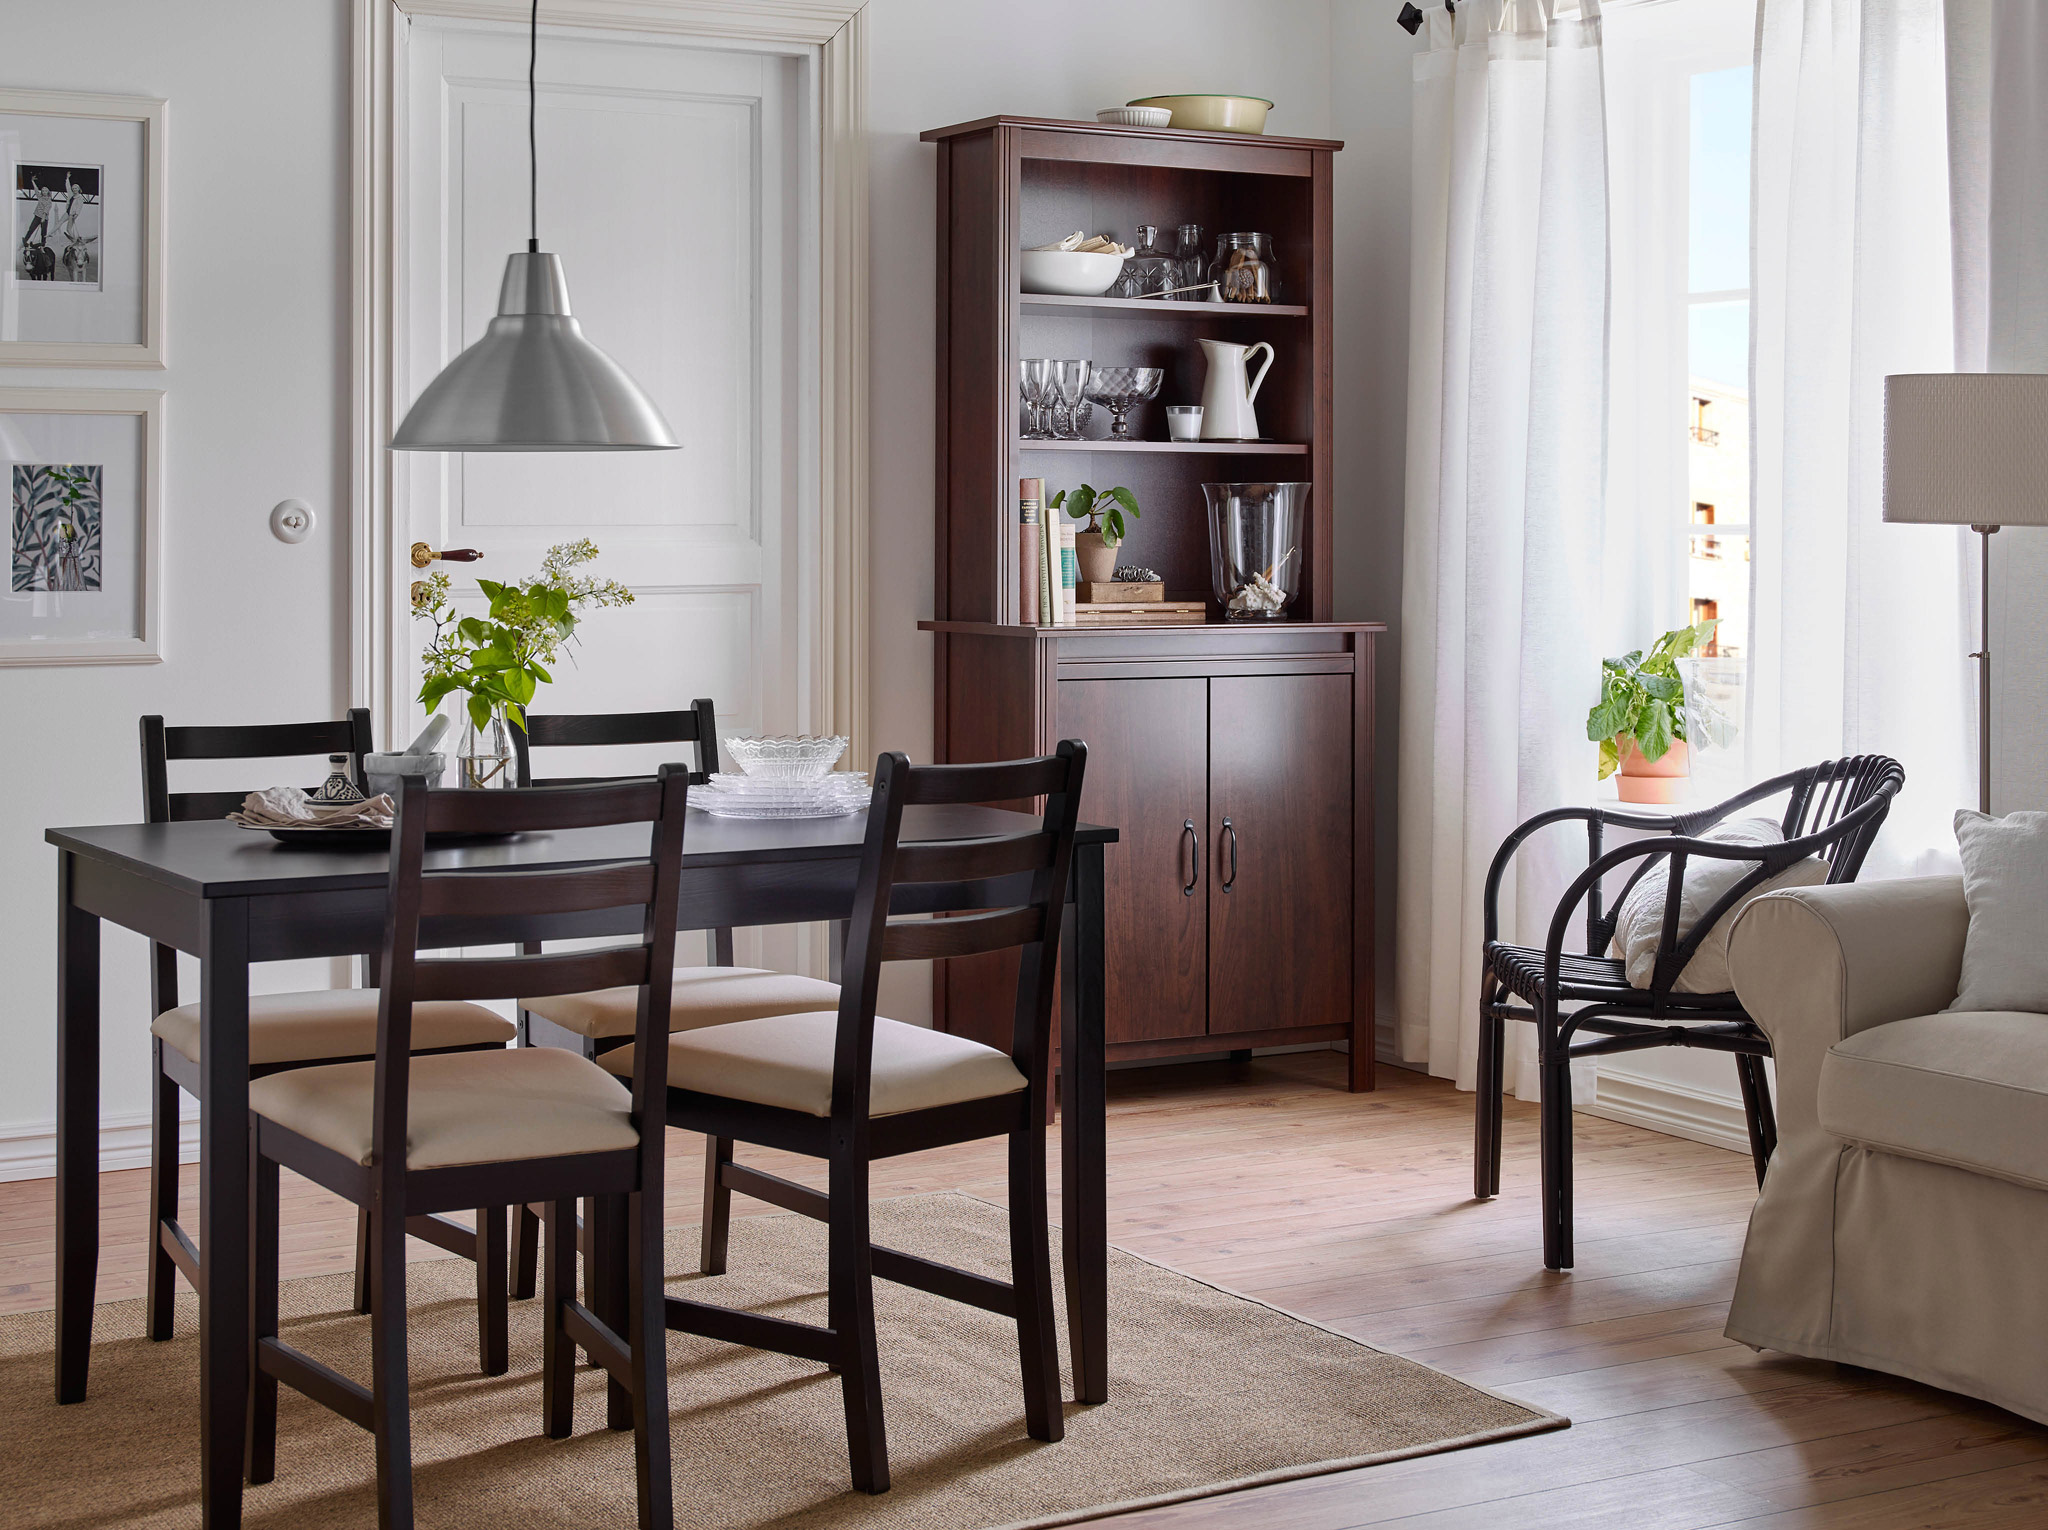 ikea dining room chairs reviews suitable with ikea dining room and chairs